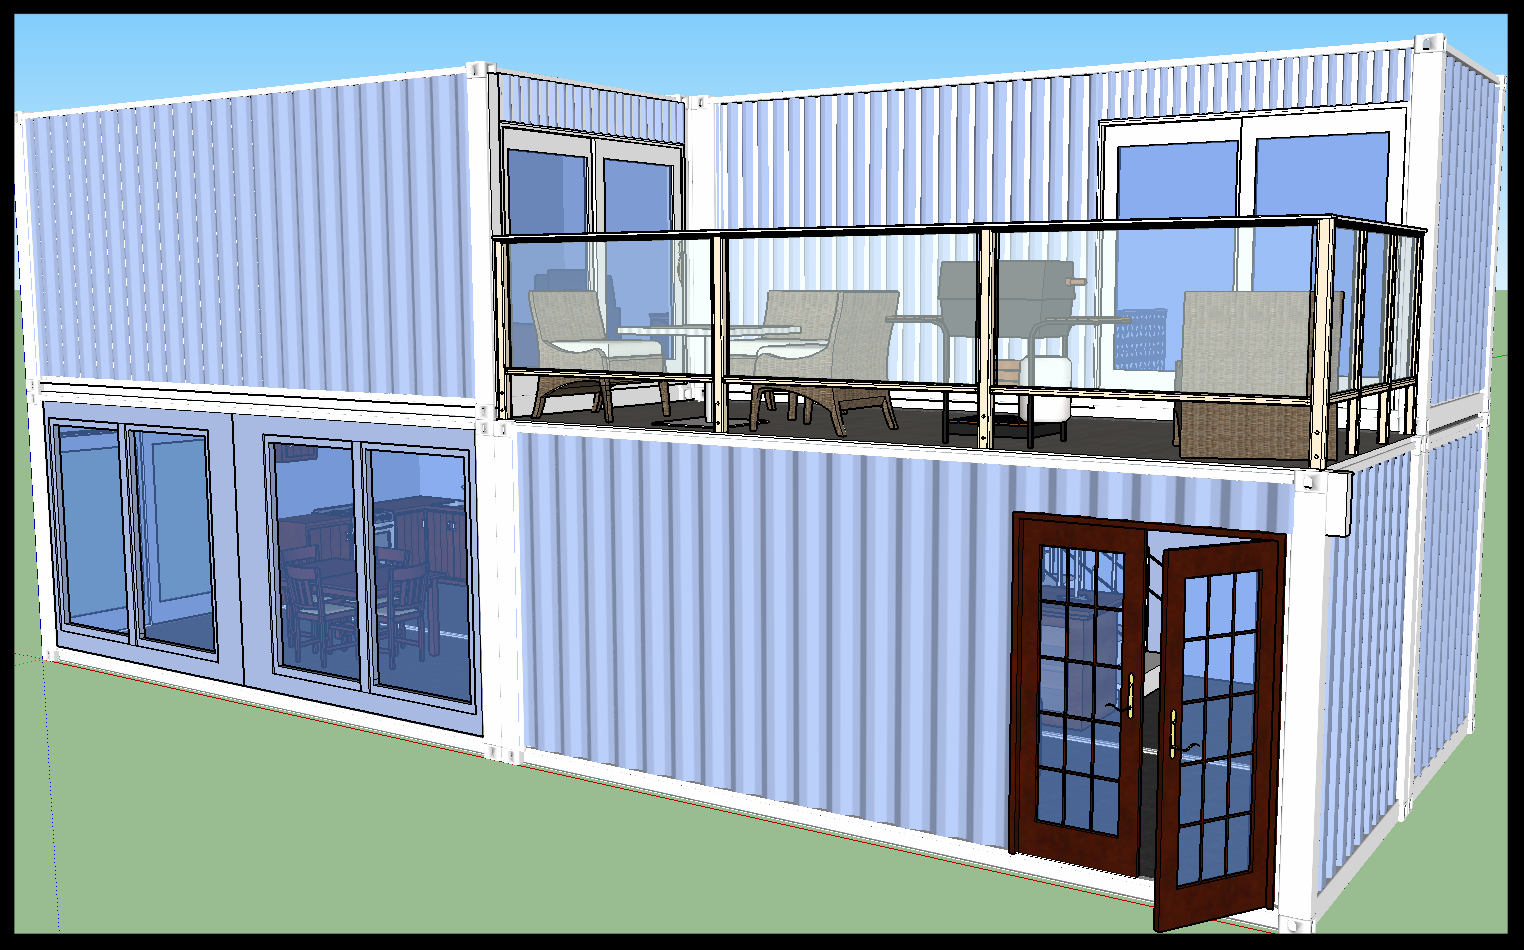 Container house, container home, shipping container home, tiny house.